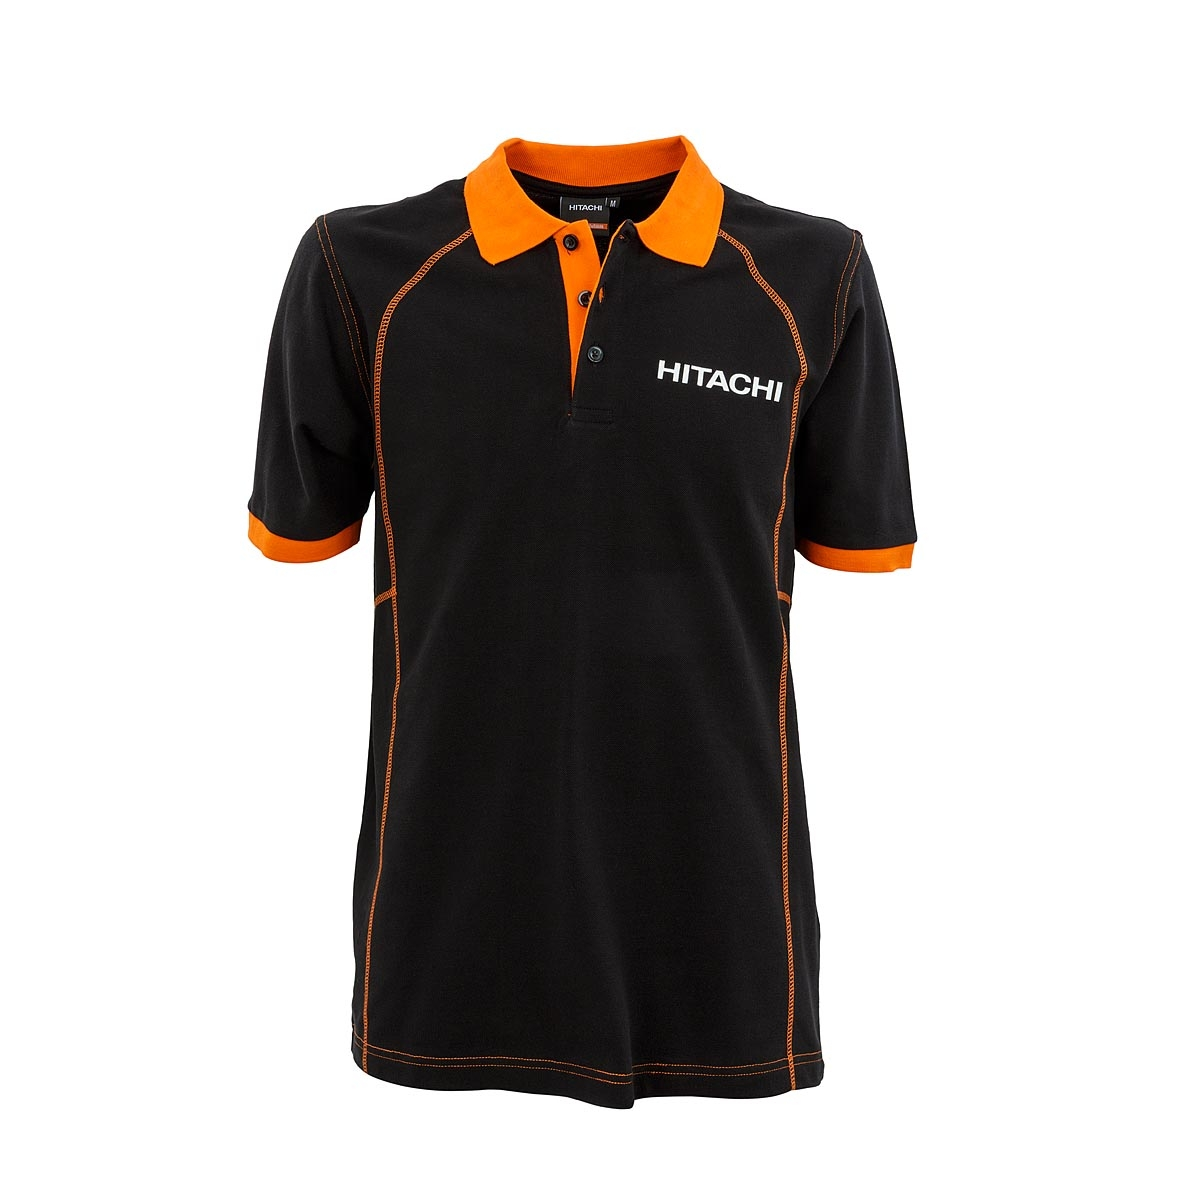 Polo T-shirt 12.02 black with orange collar for men - HCME ...